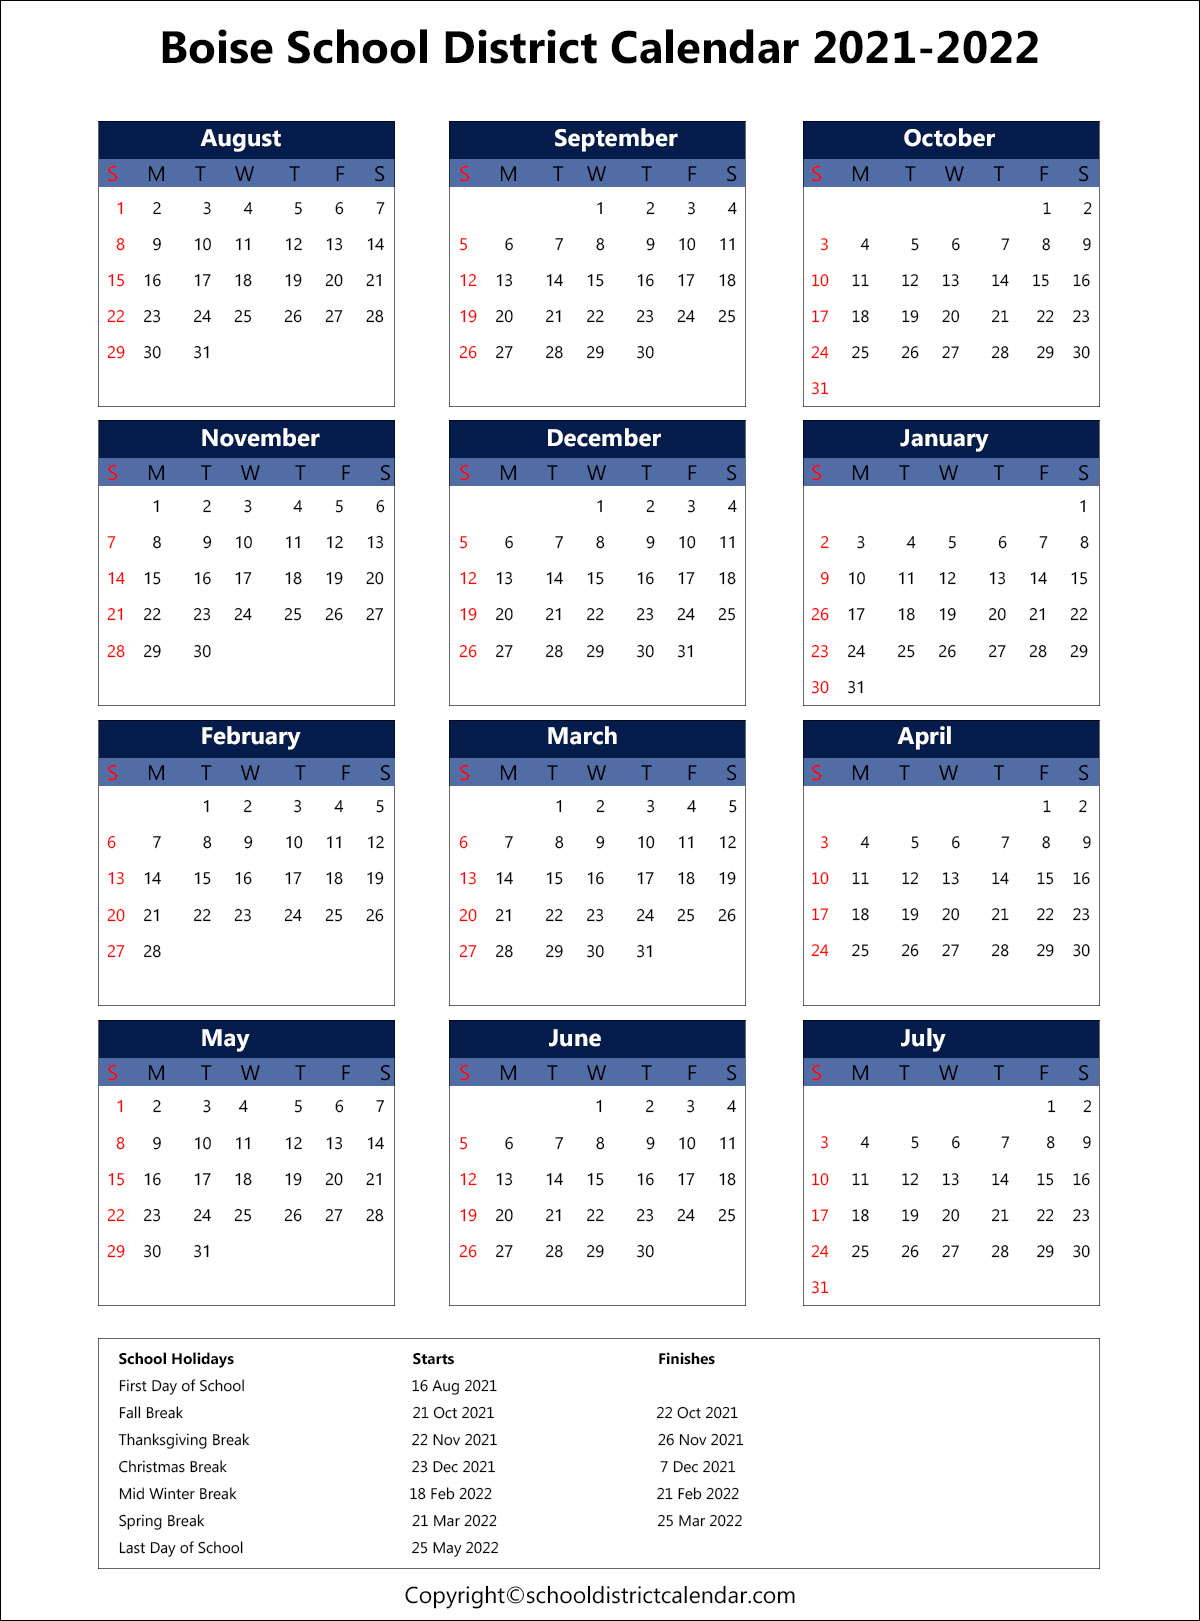 Boise School District Calendar 2021